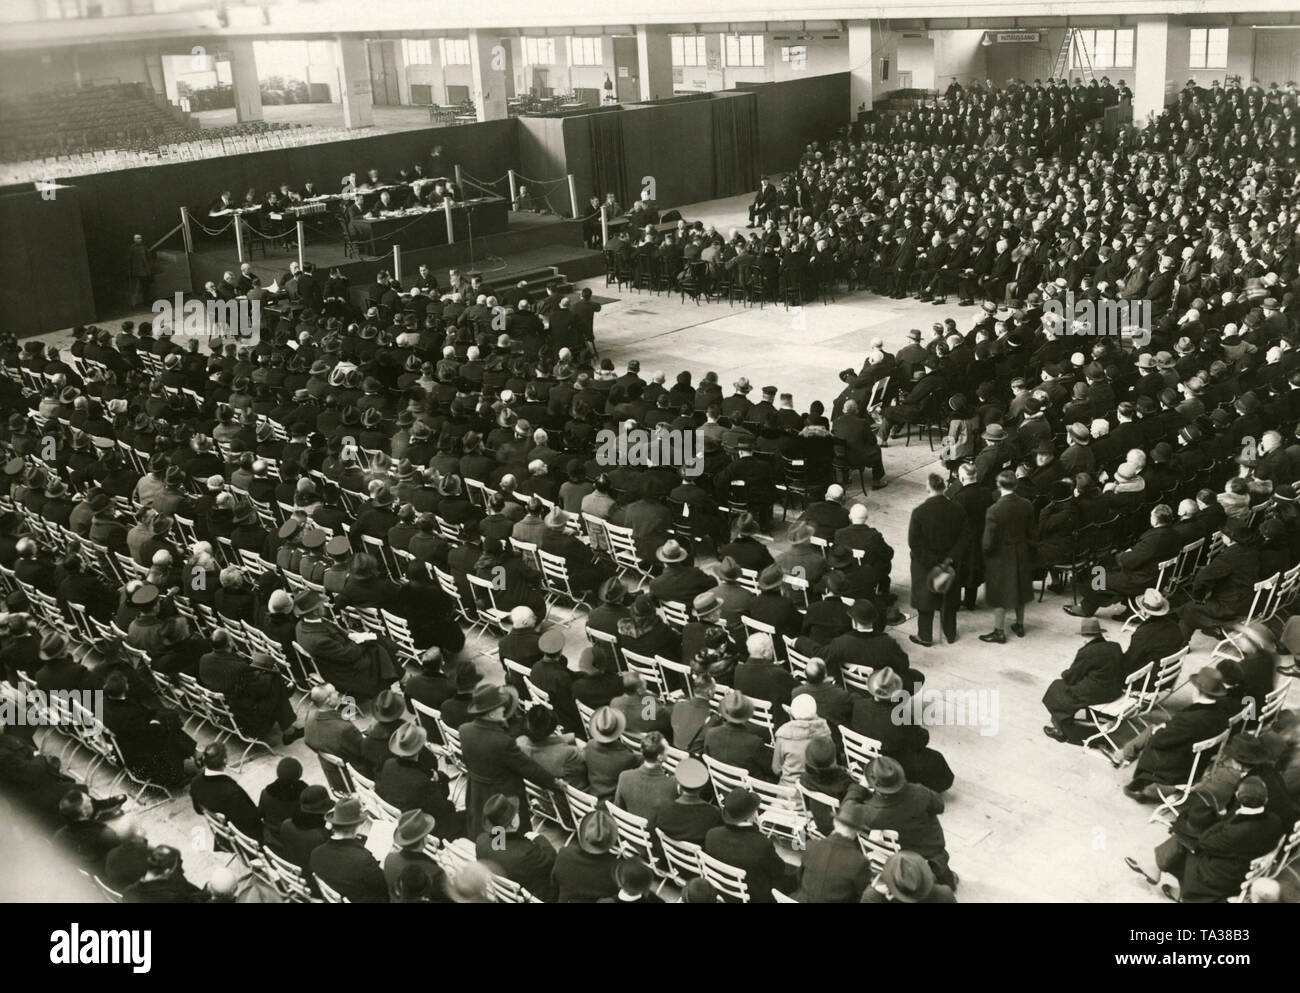 Meeting of creditors of the Bank fuer Deutsche Beamtes. At this point the money of the depositors is already gone. The meeting takes place in a car hall at the Kaiserdamm. - Stock Image